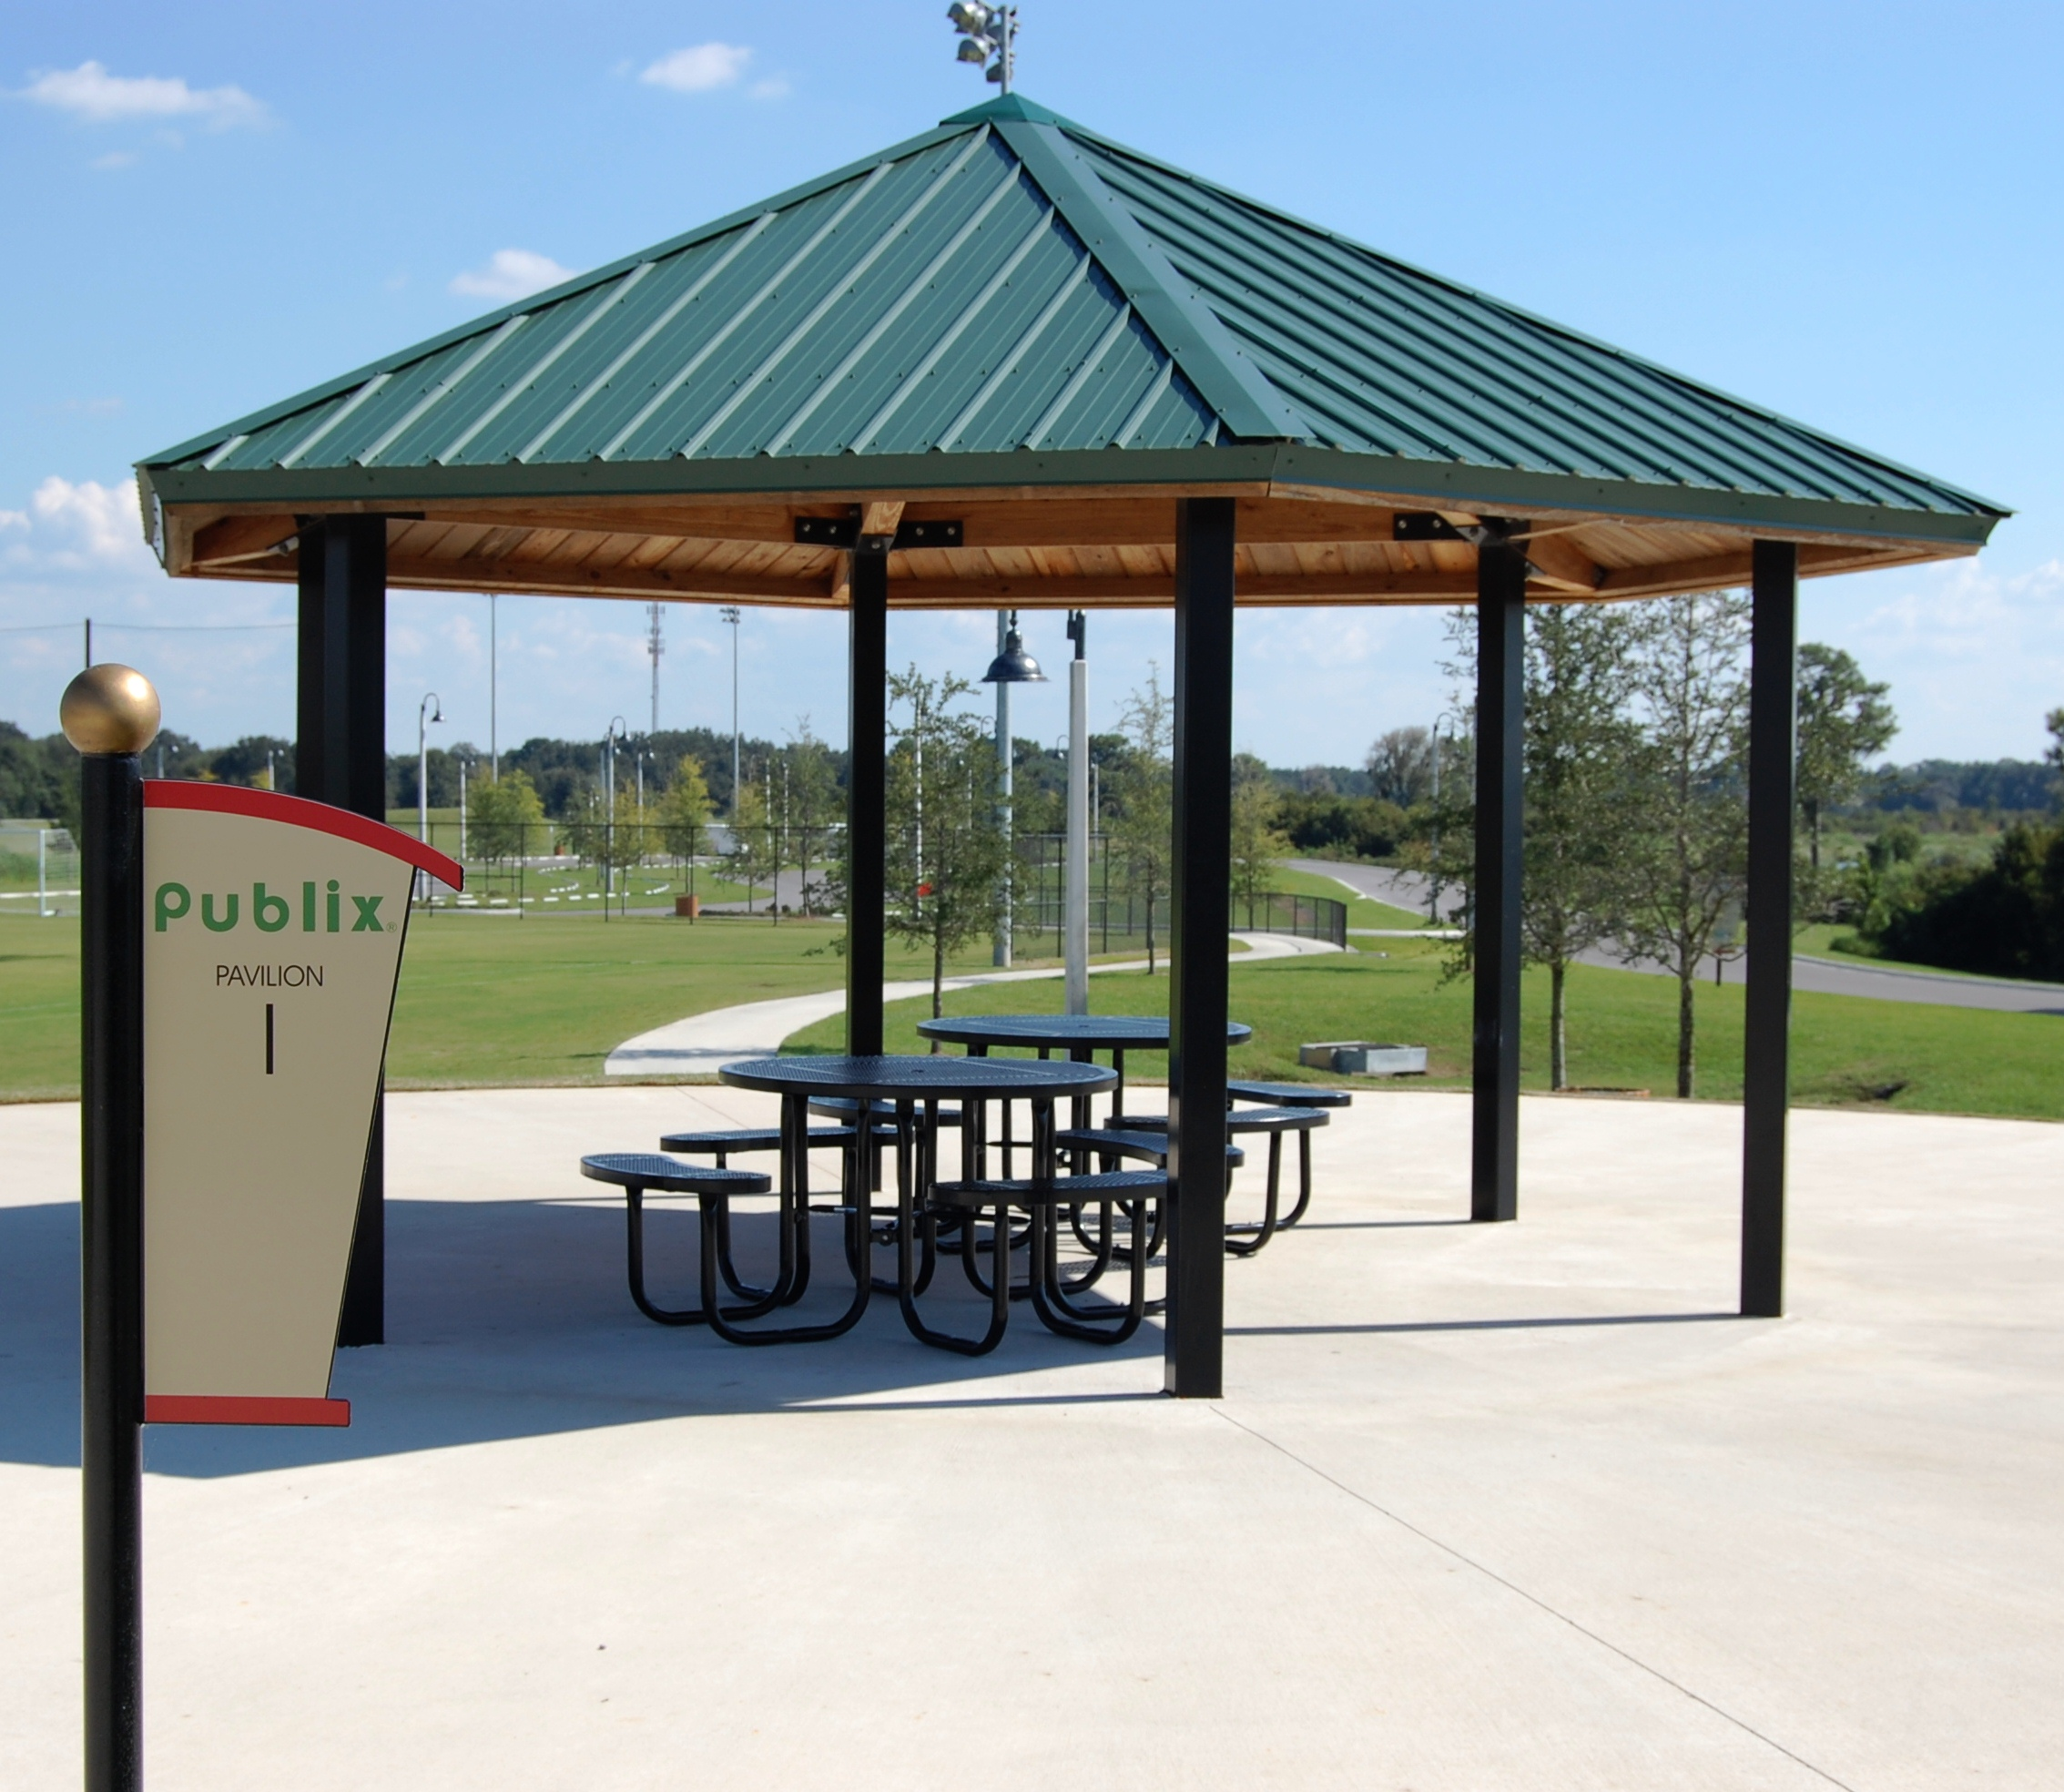 A picnic pavilion at the Lake Myrtle Sports Park